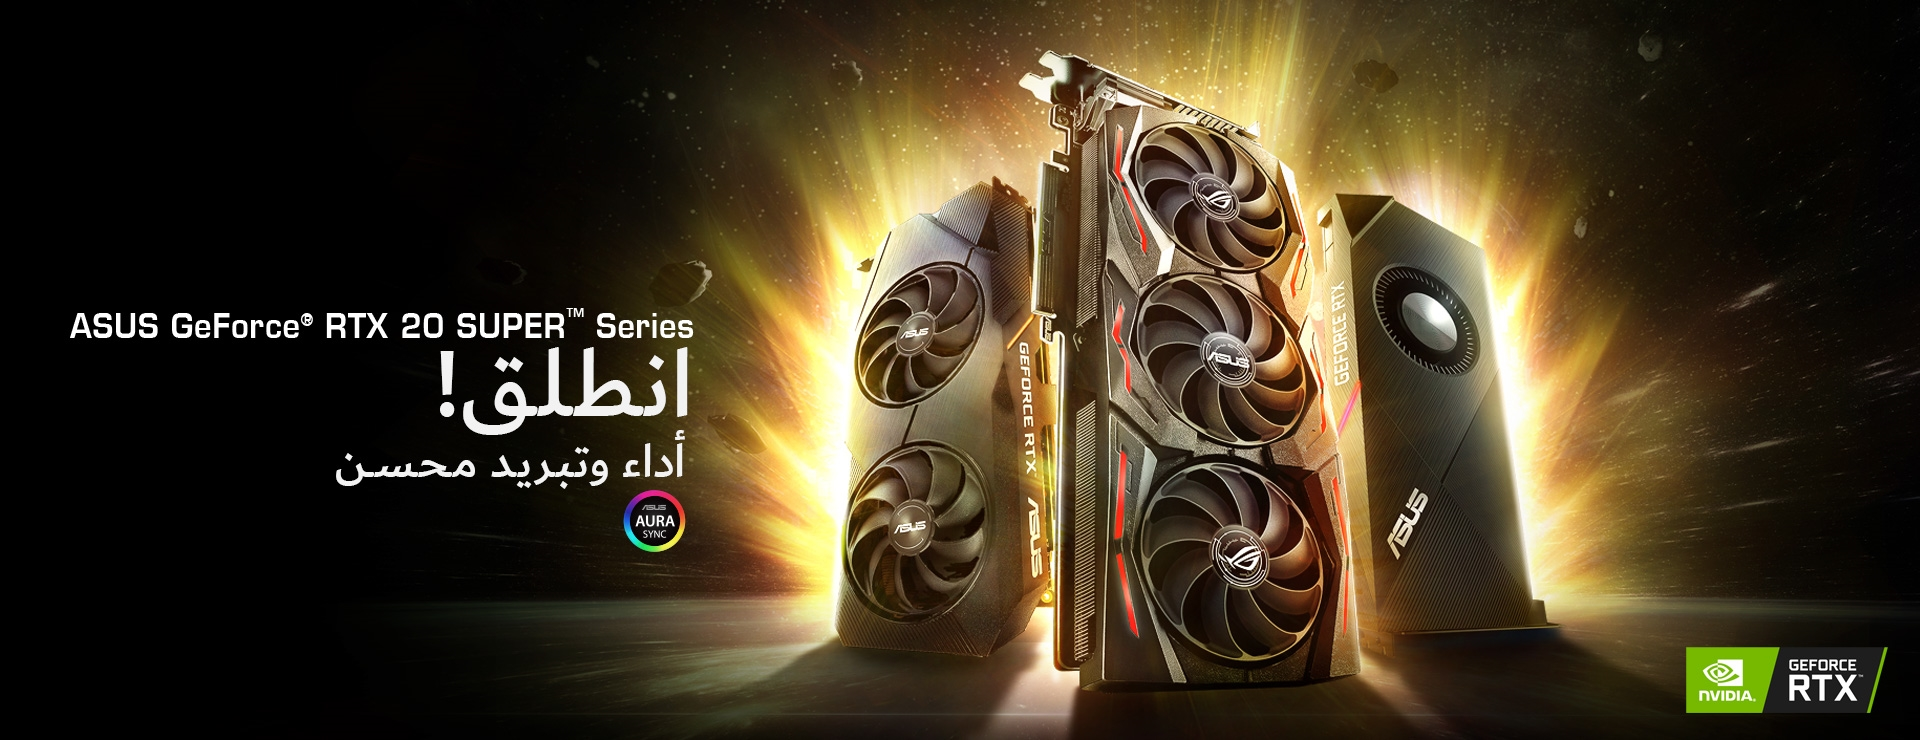 ASUS GeForce RTX 20 Super Series